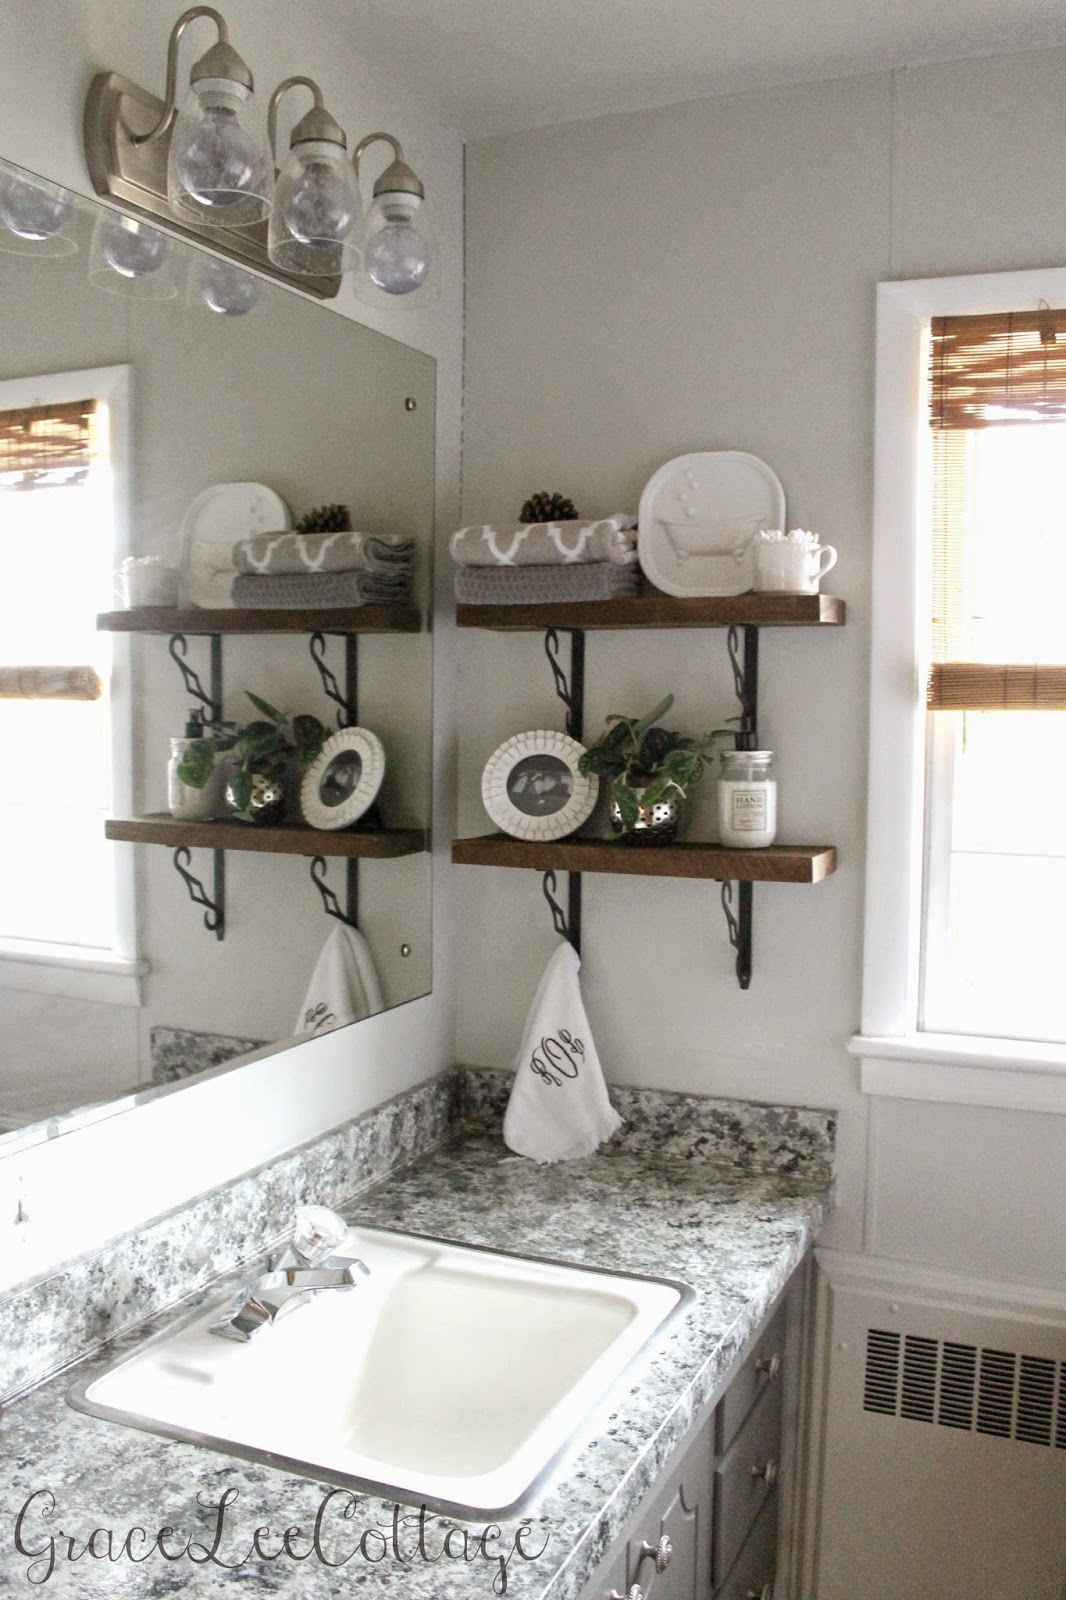 Grace Lee Cottage: DIY Rustic Bathroom Shelves